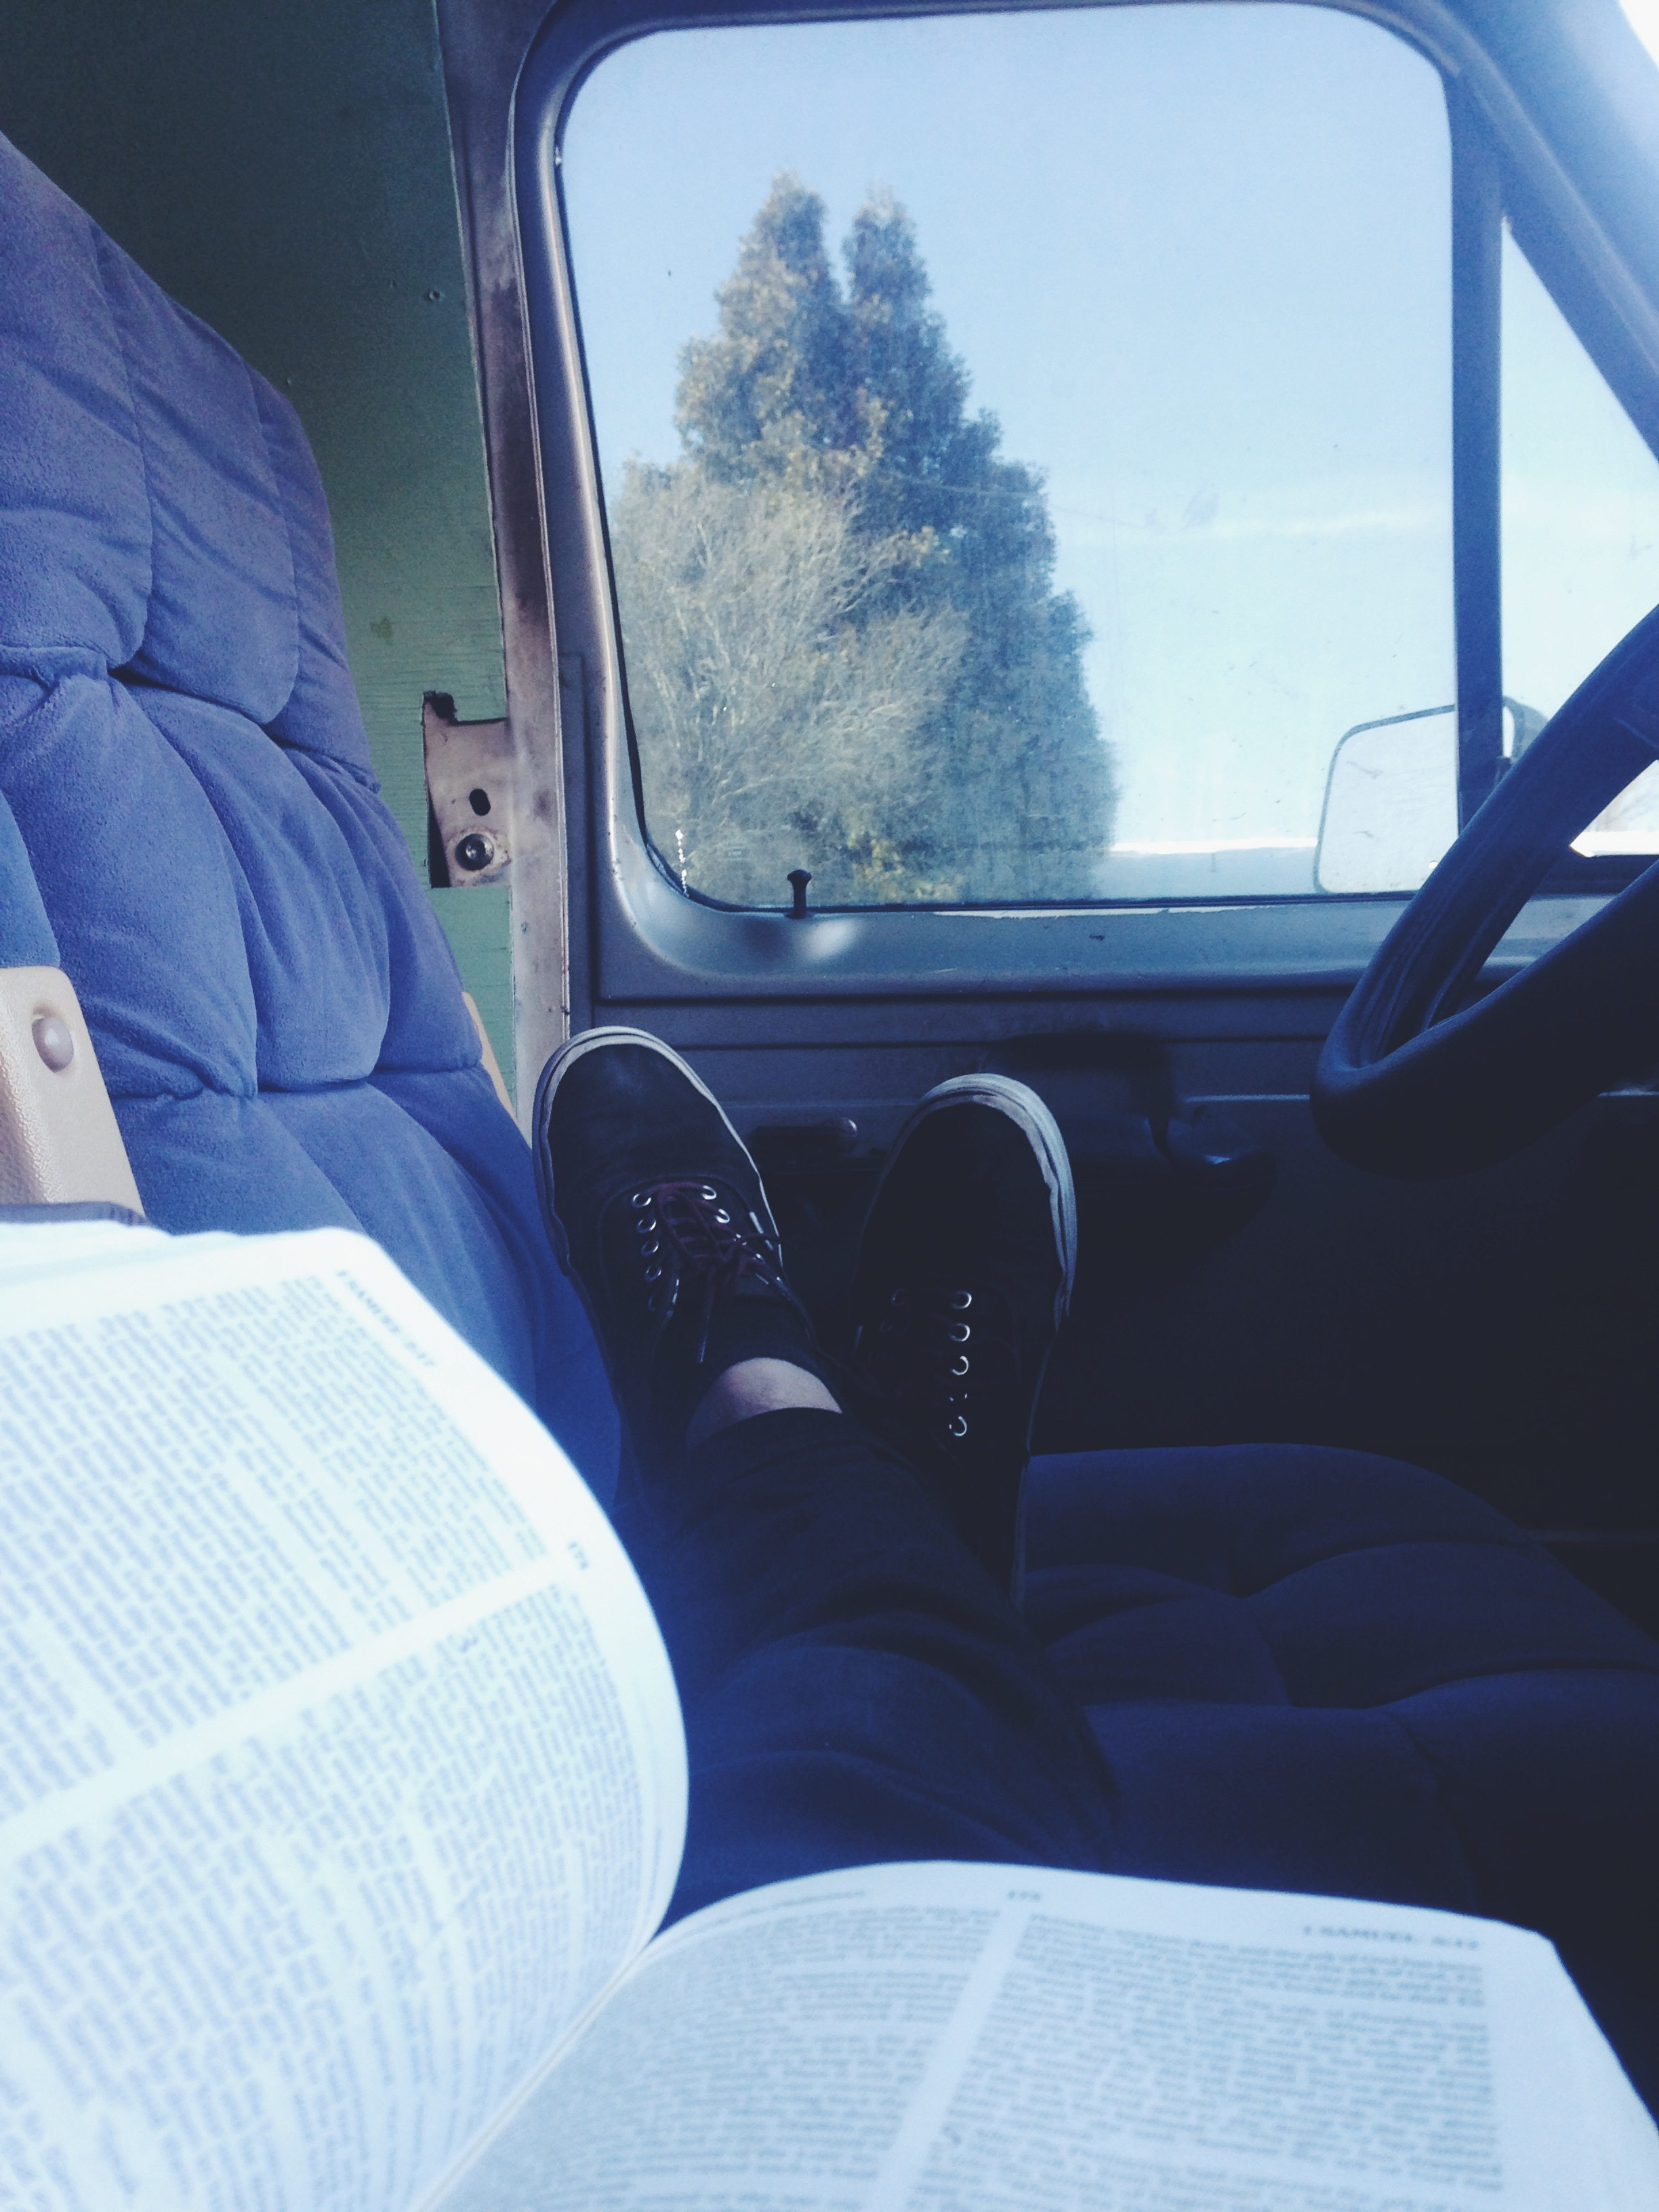 Enjoying a read in the van. Finally getting above 30º for a small chunk of the day.